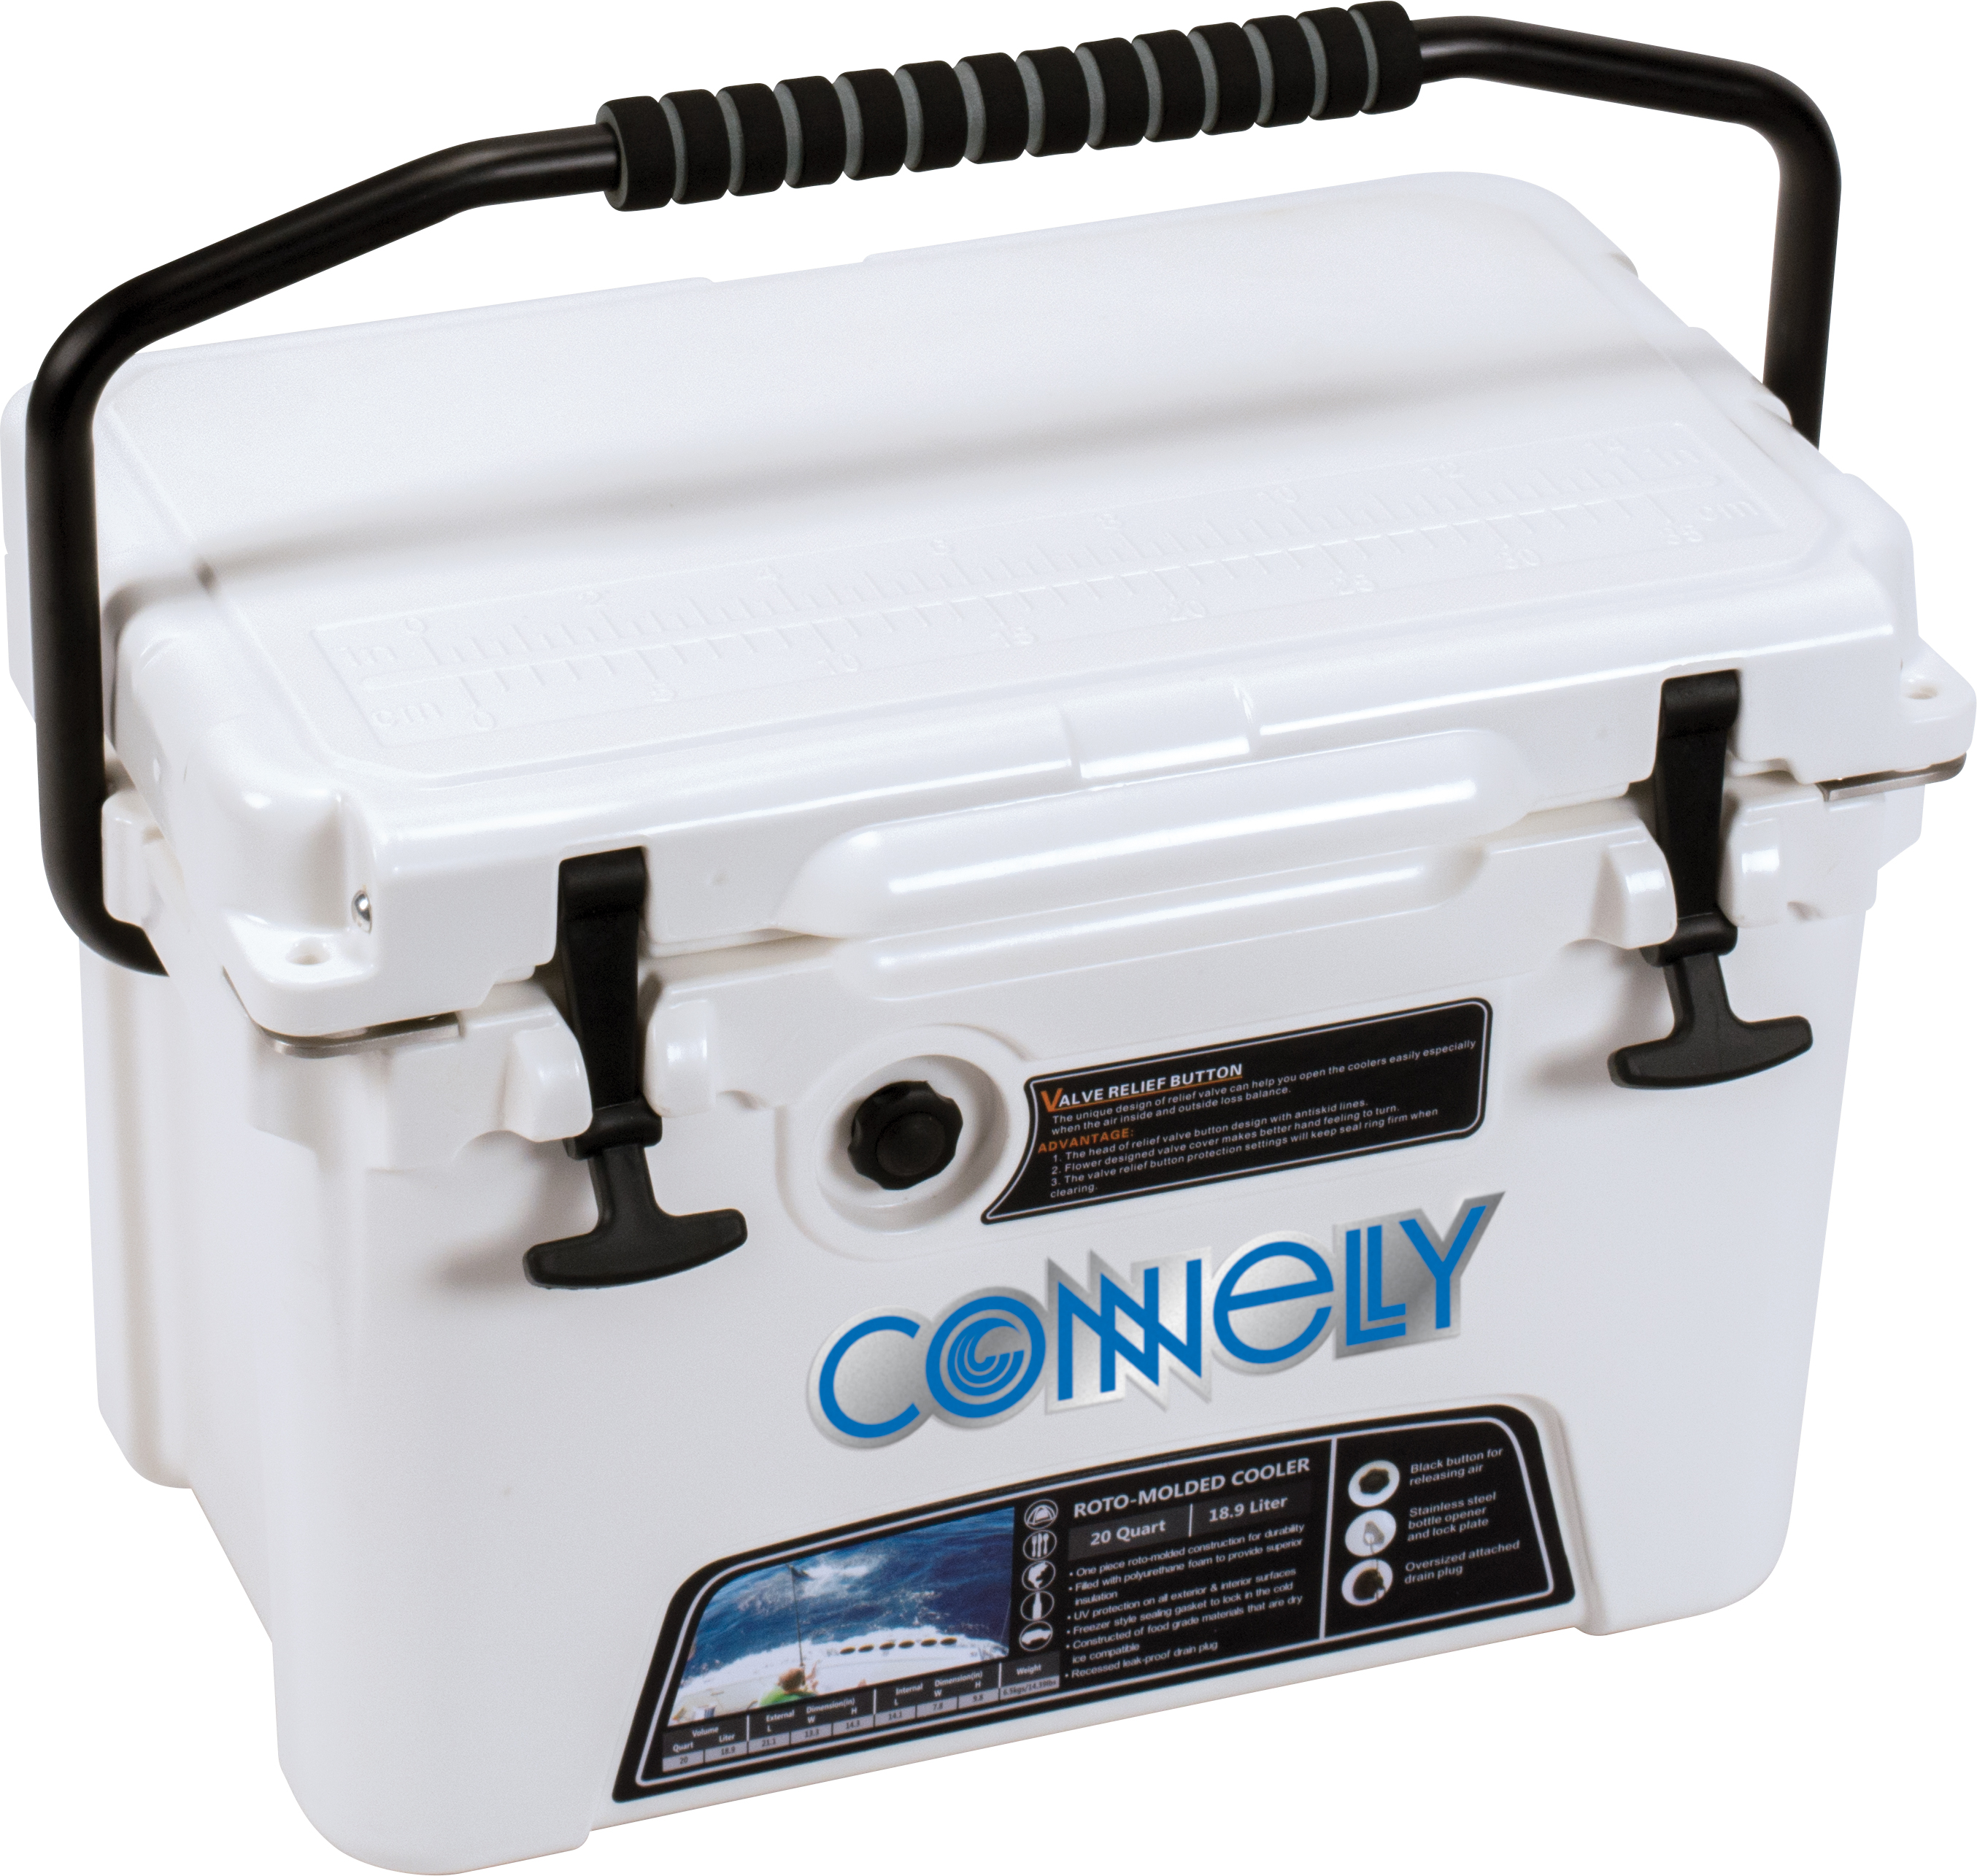 20 QUART COOLER CONNELLY 2018